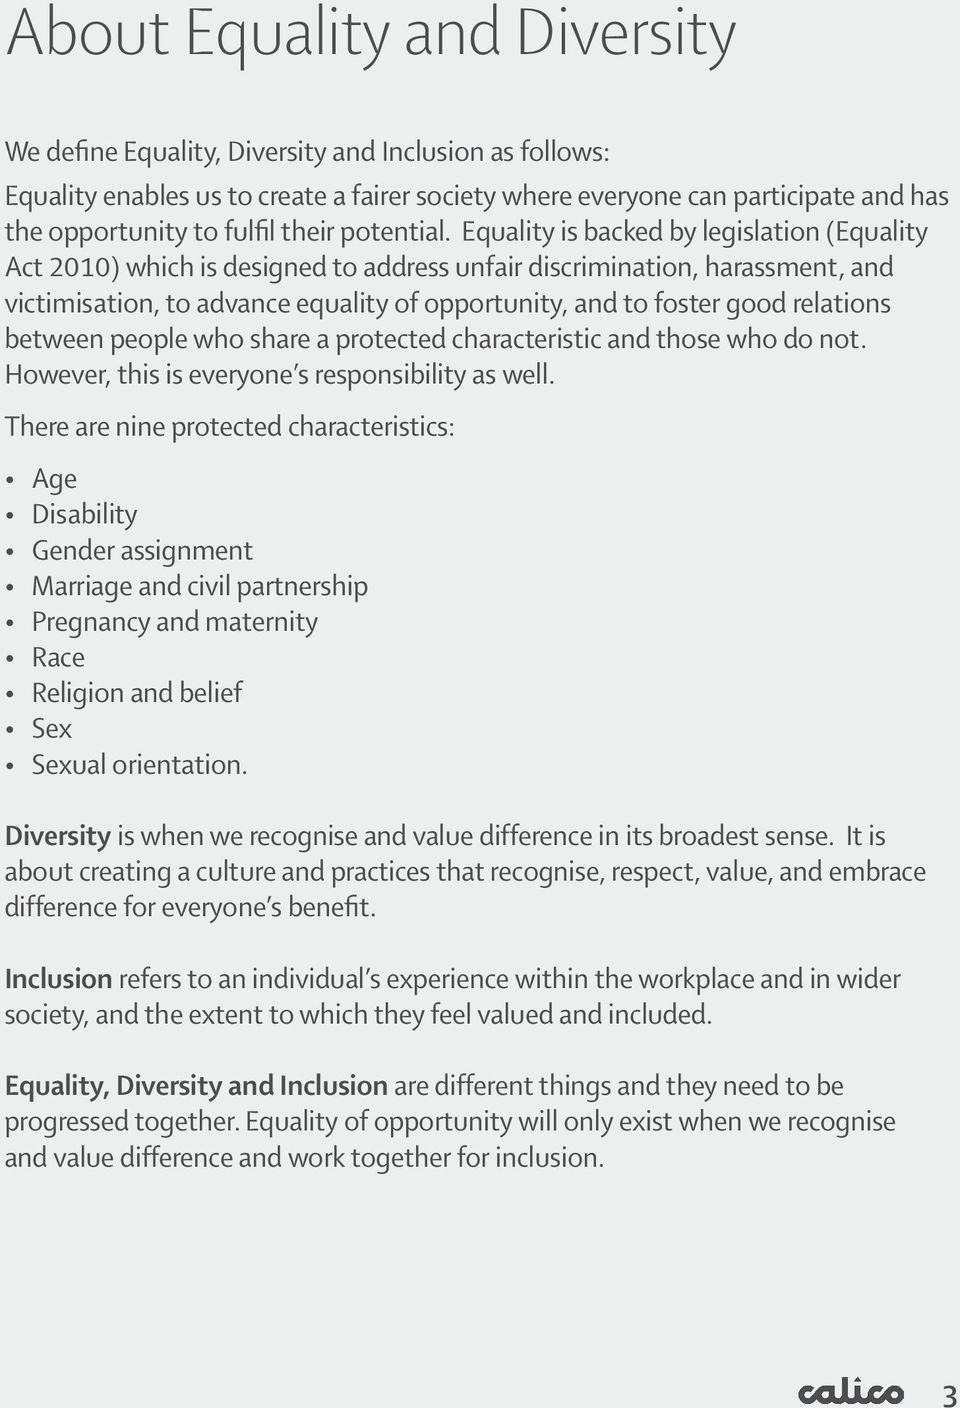 Equality is backed by legislation (Equality Act 2010) which is designed to address unfair discrimination, harassment, and victimisation, to advance equality of opportunity, and to foster good